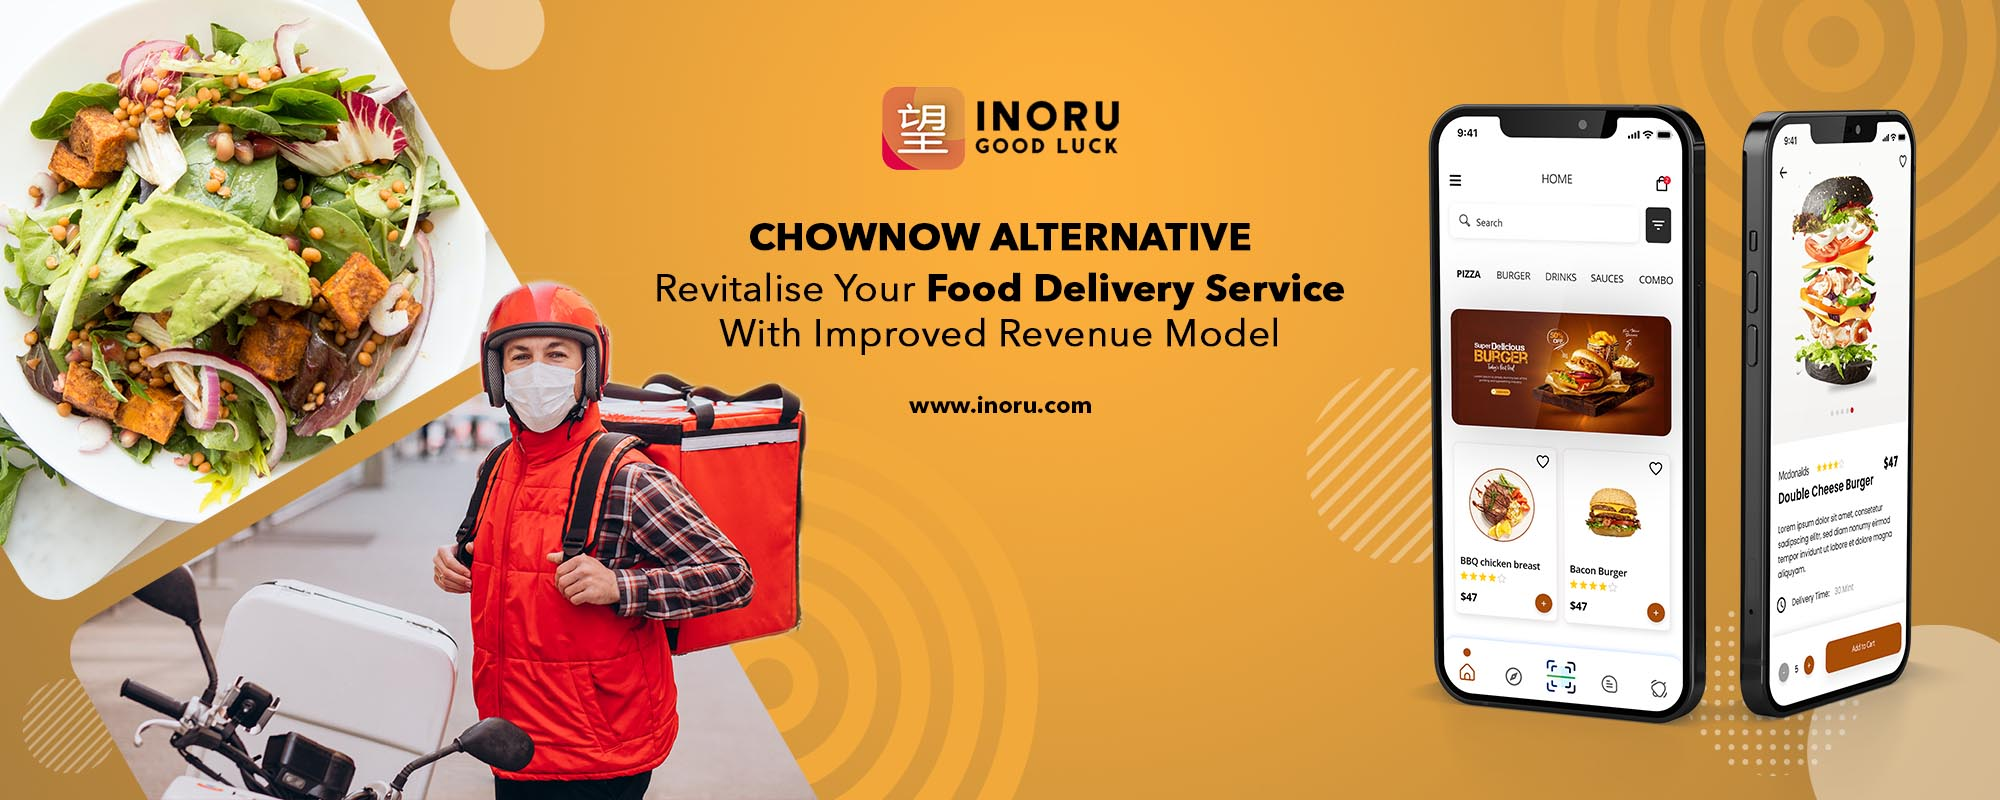 ChowNow Alternative,ChowNow Clone,Online Food Delivery,Delivery Restaurant near me,Food Delivery App